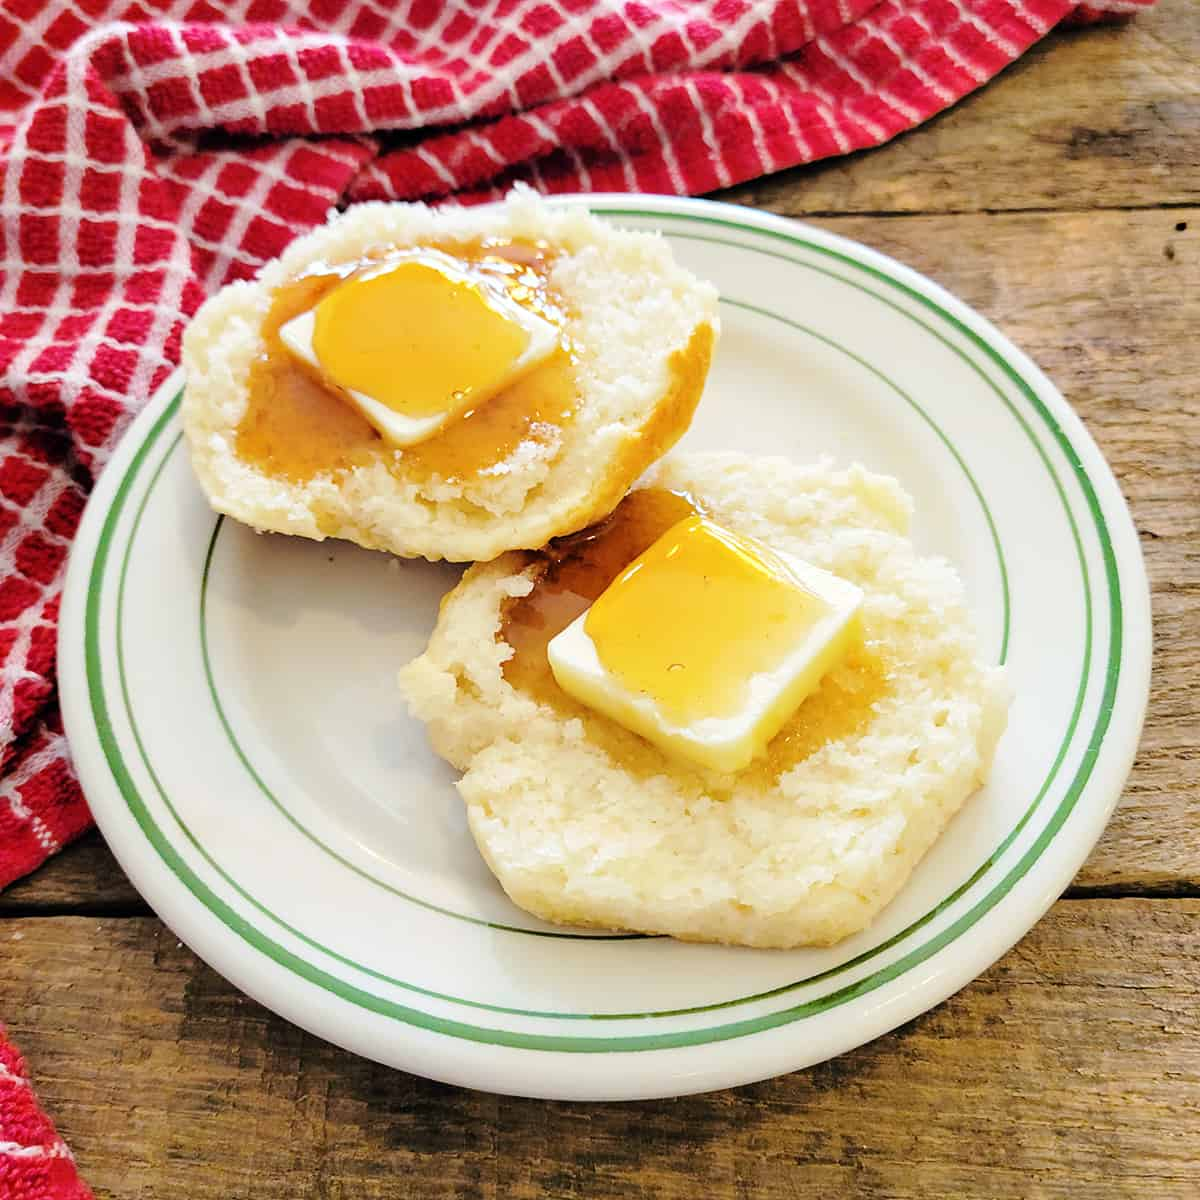 A split biscuit filled with butter and drizzled with honey.